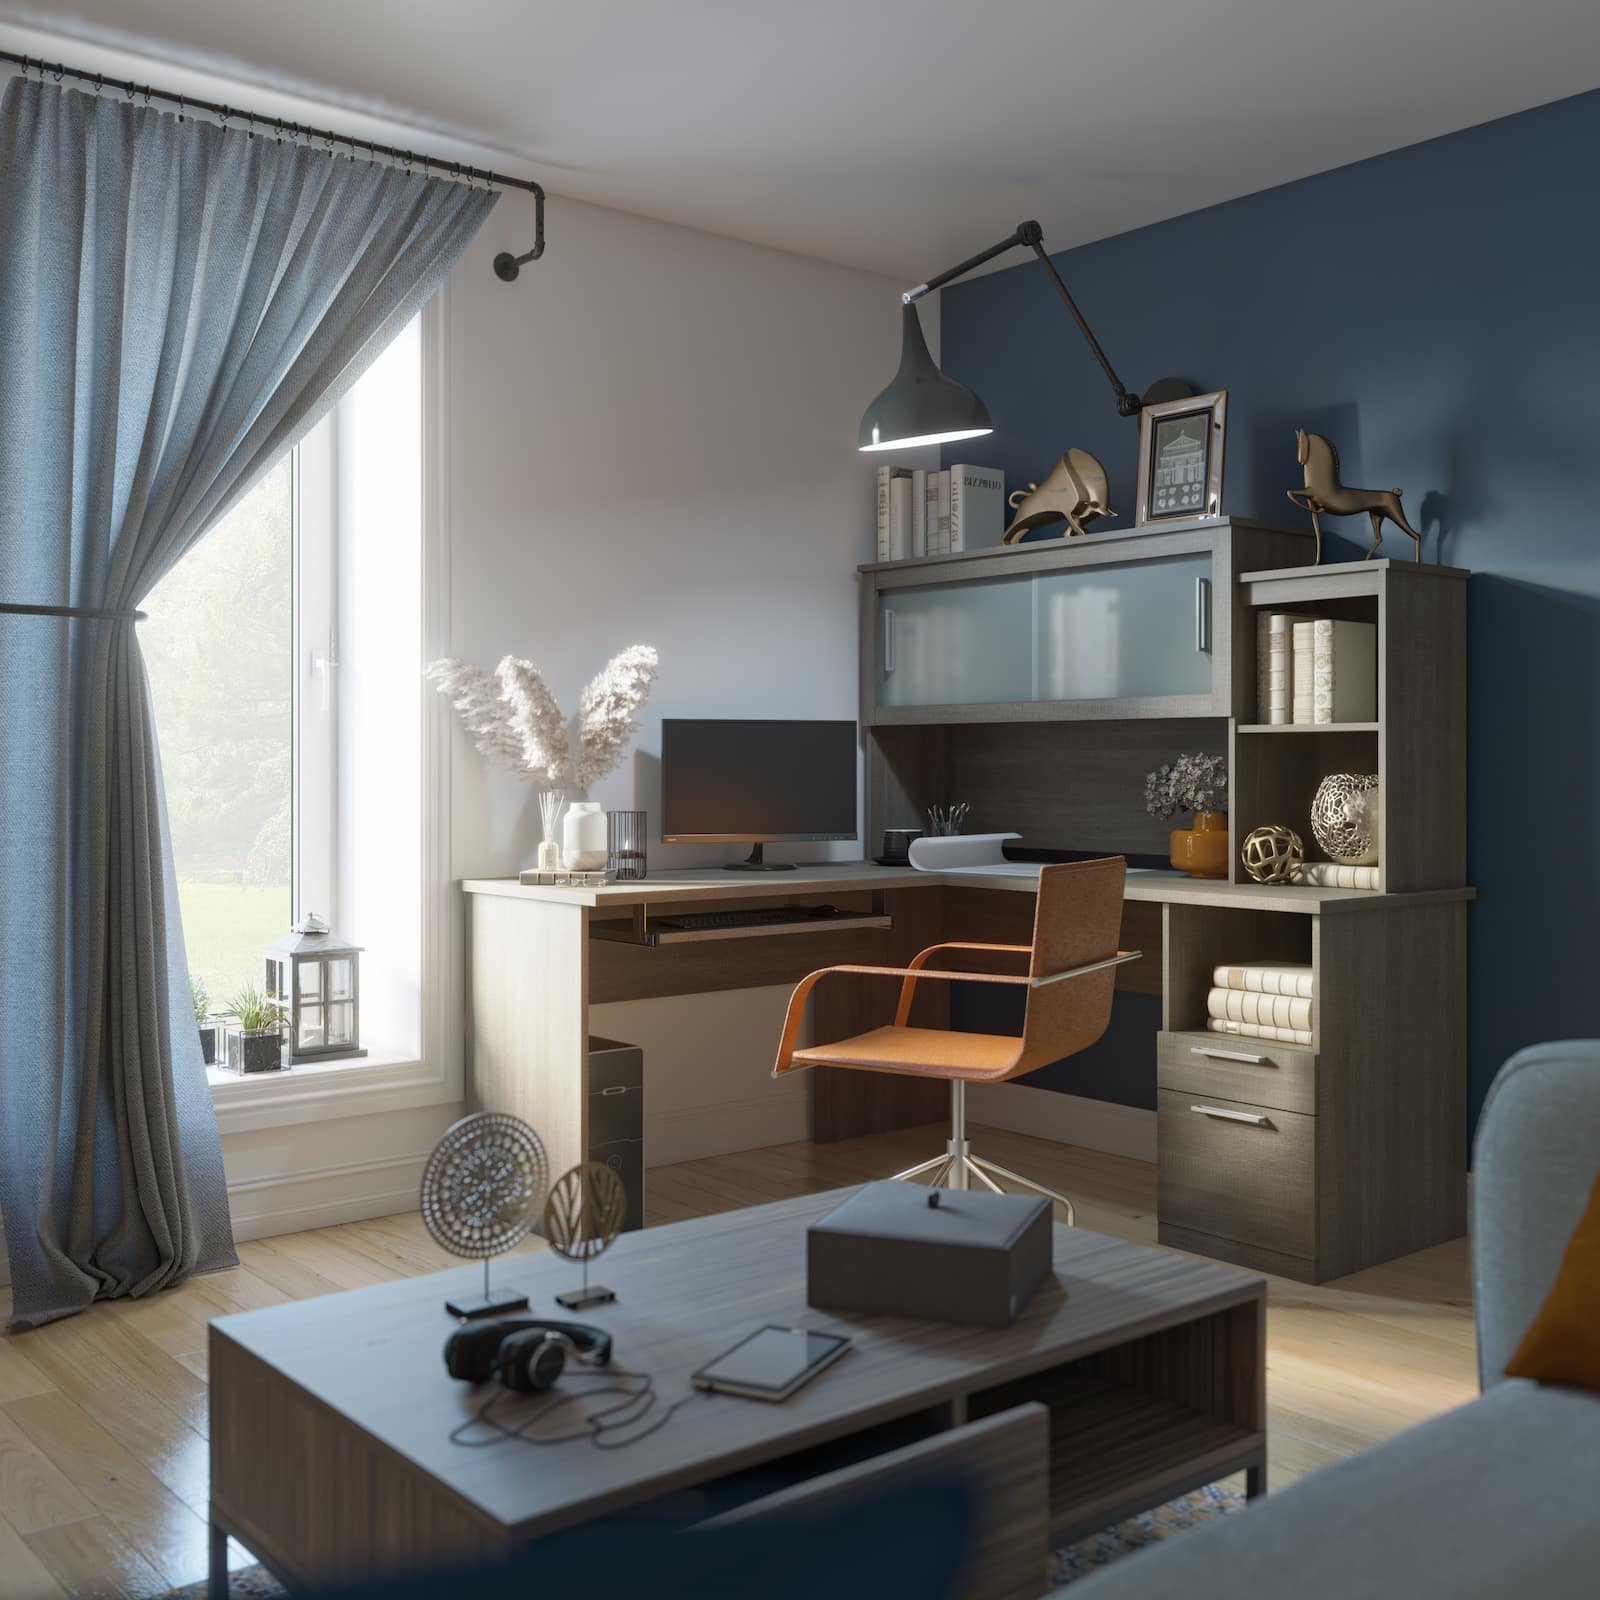 grey l shaped desk next to window with blue curtains